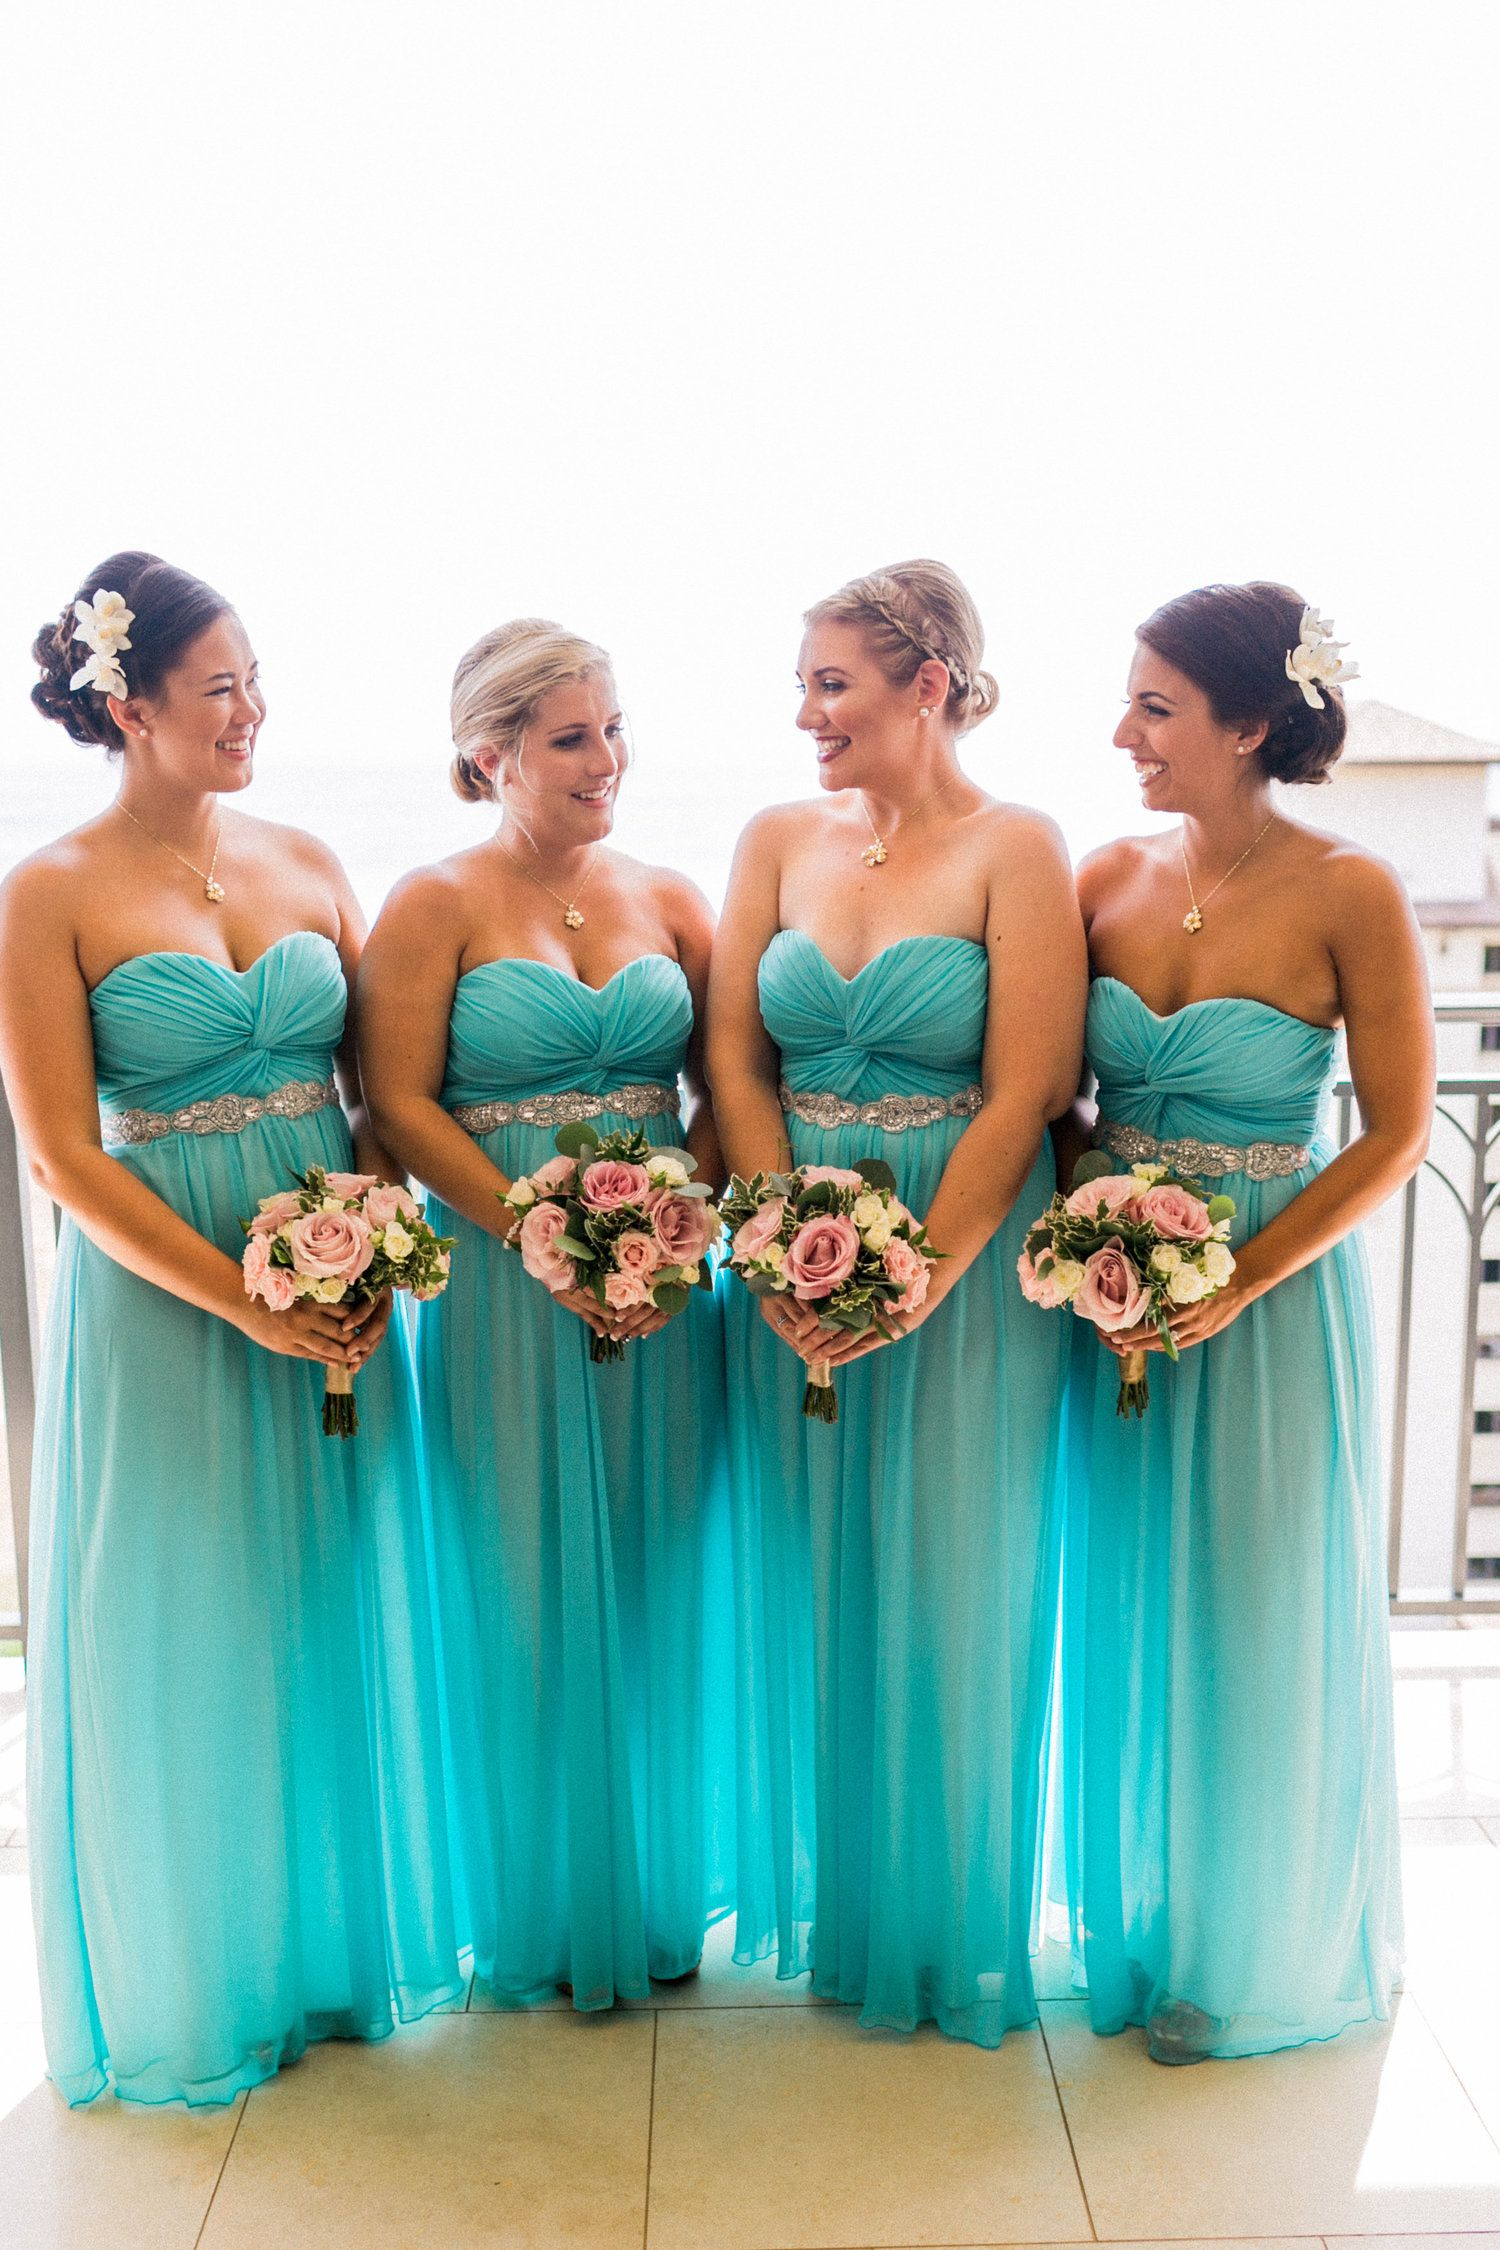 e2cc6a2218b www.alexnshawncaple.com ❤ www.sweetstart.com ❤ Gorgeous Bridesmaids in Aqua tiffany  blue Dresses  David s Bridal Him  Ralph Lauren  Her  Ravit Designs ...